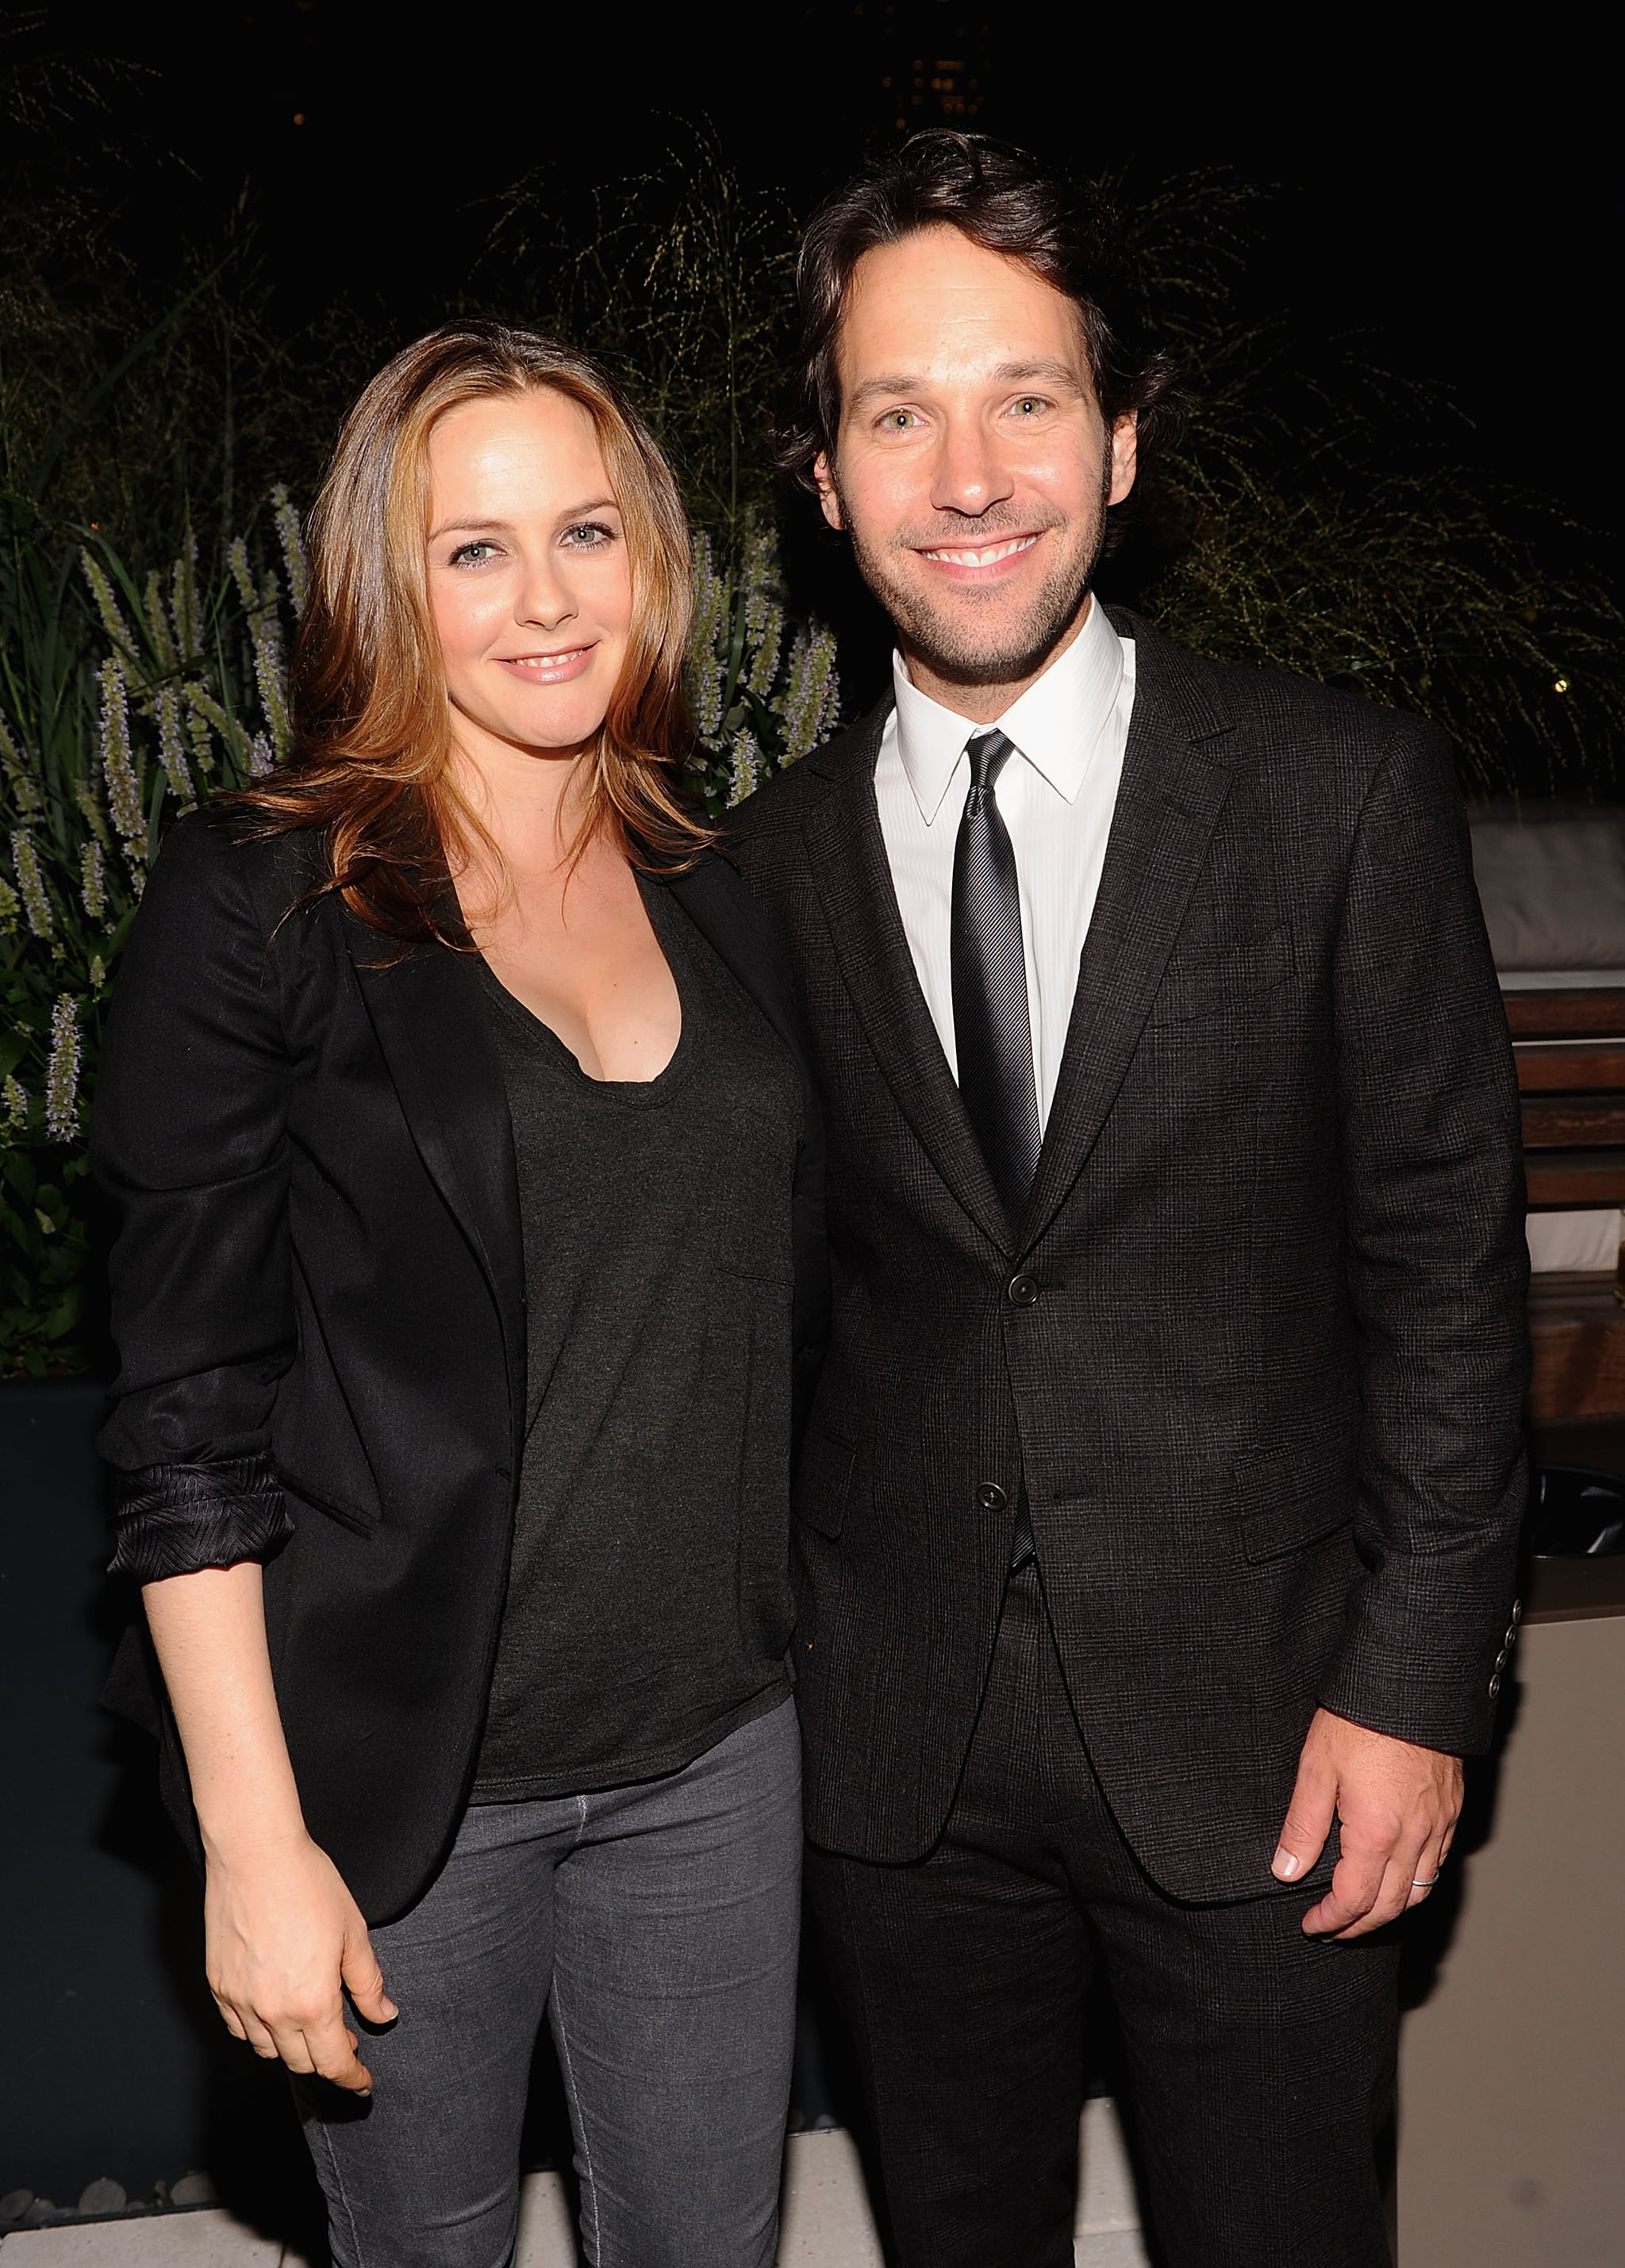 Alicia Silverstone and Paul Rudd